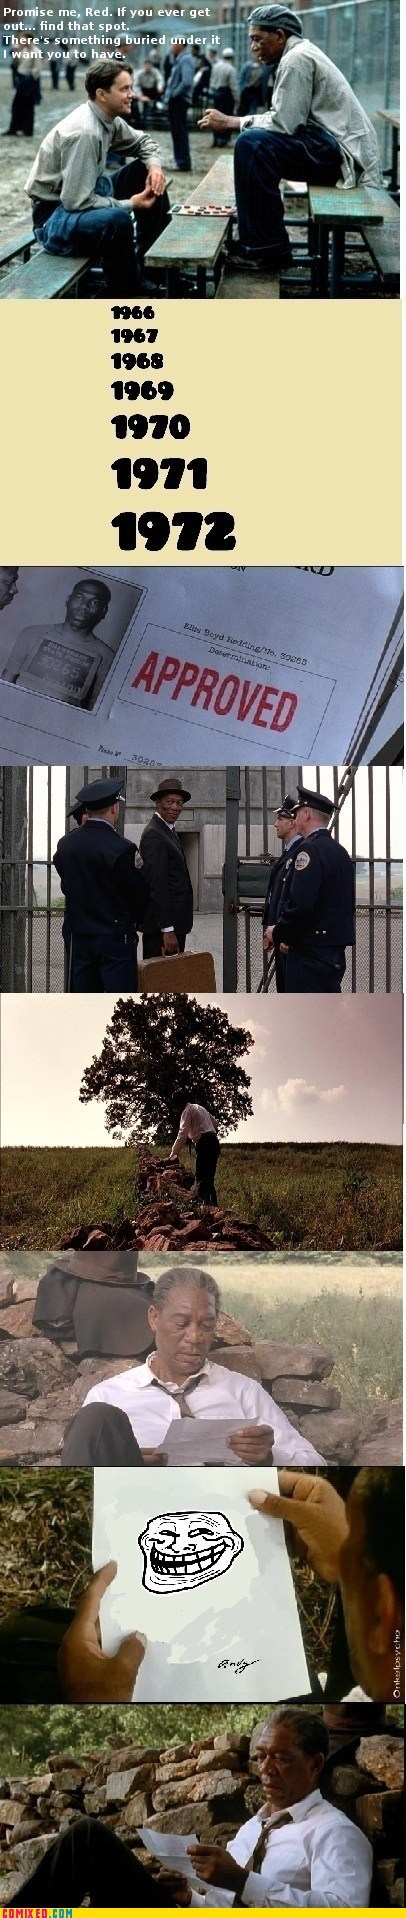 From the Movies Movie shawshank redemption troll - 6265932544